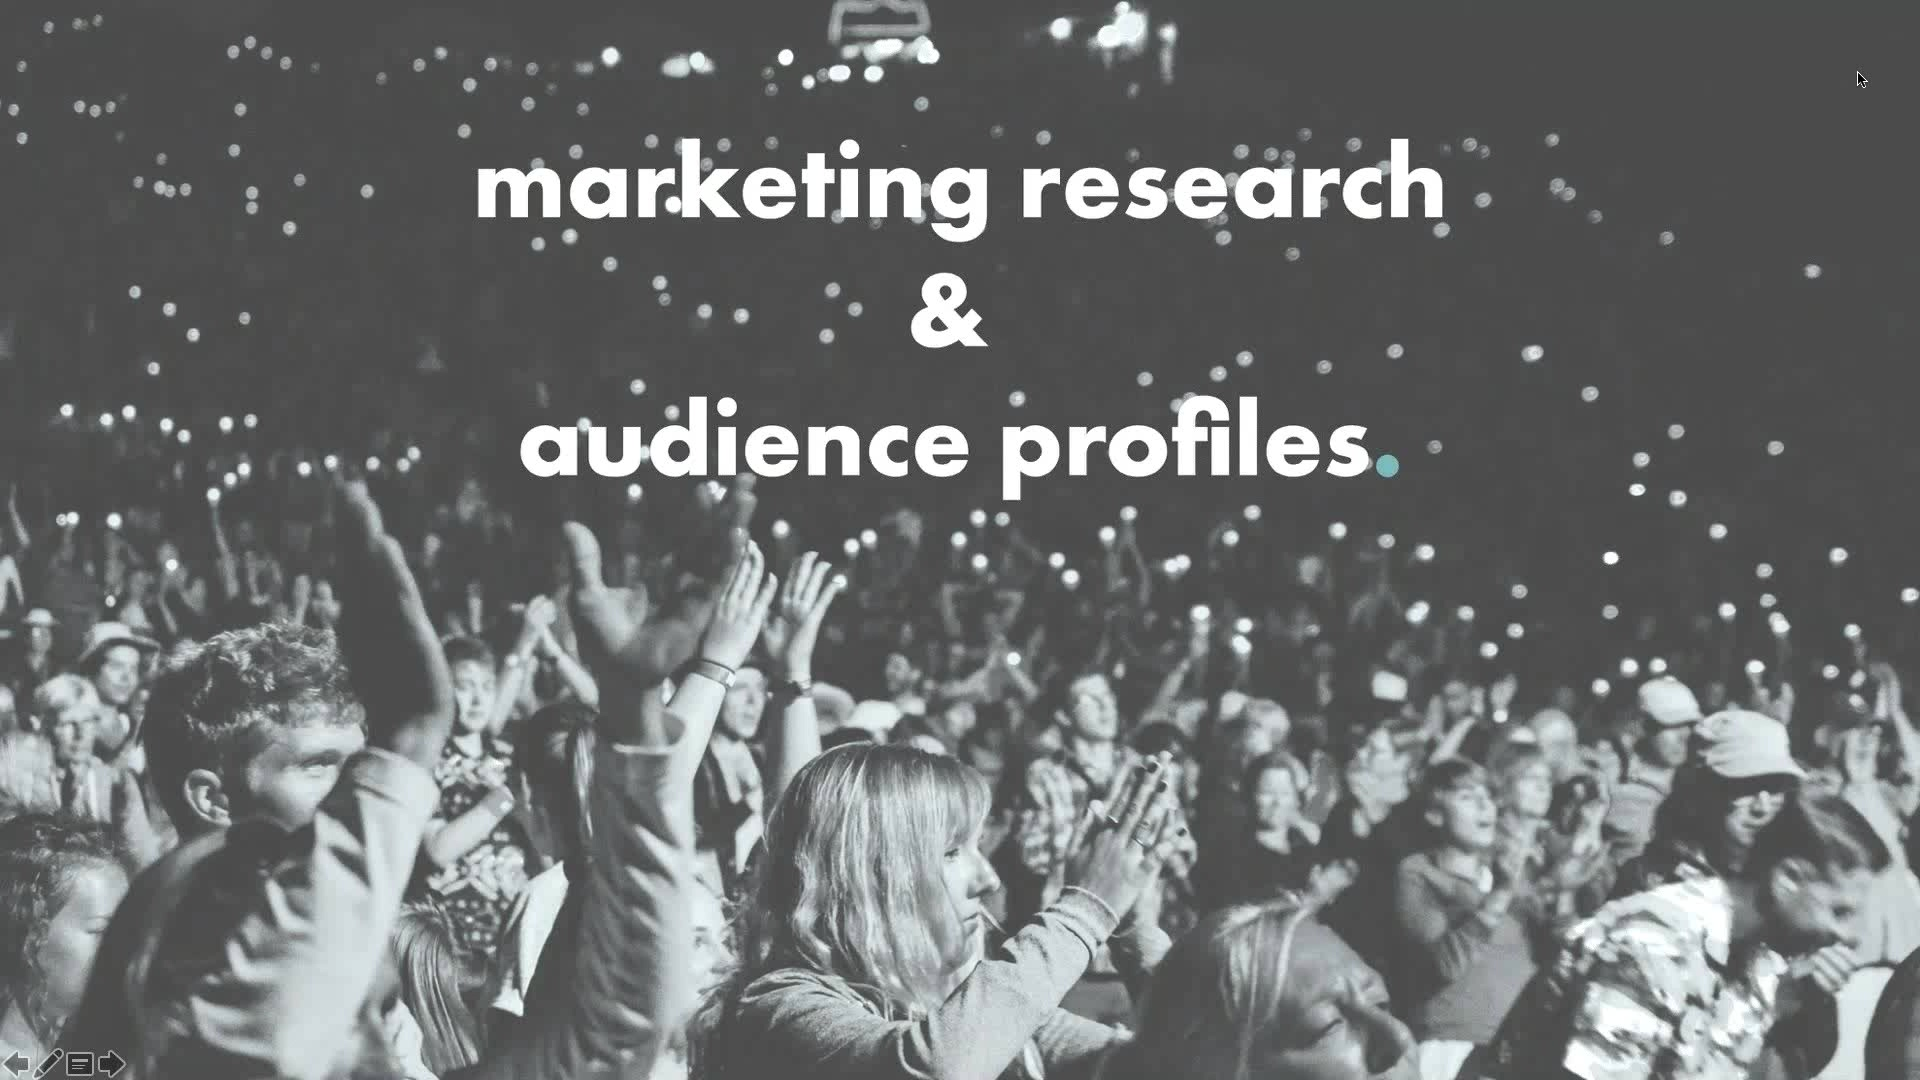 Marketing Research & Audience Profiles